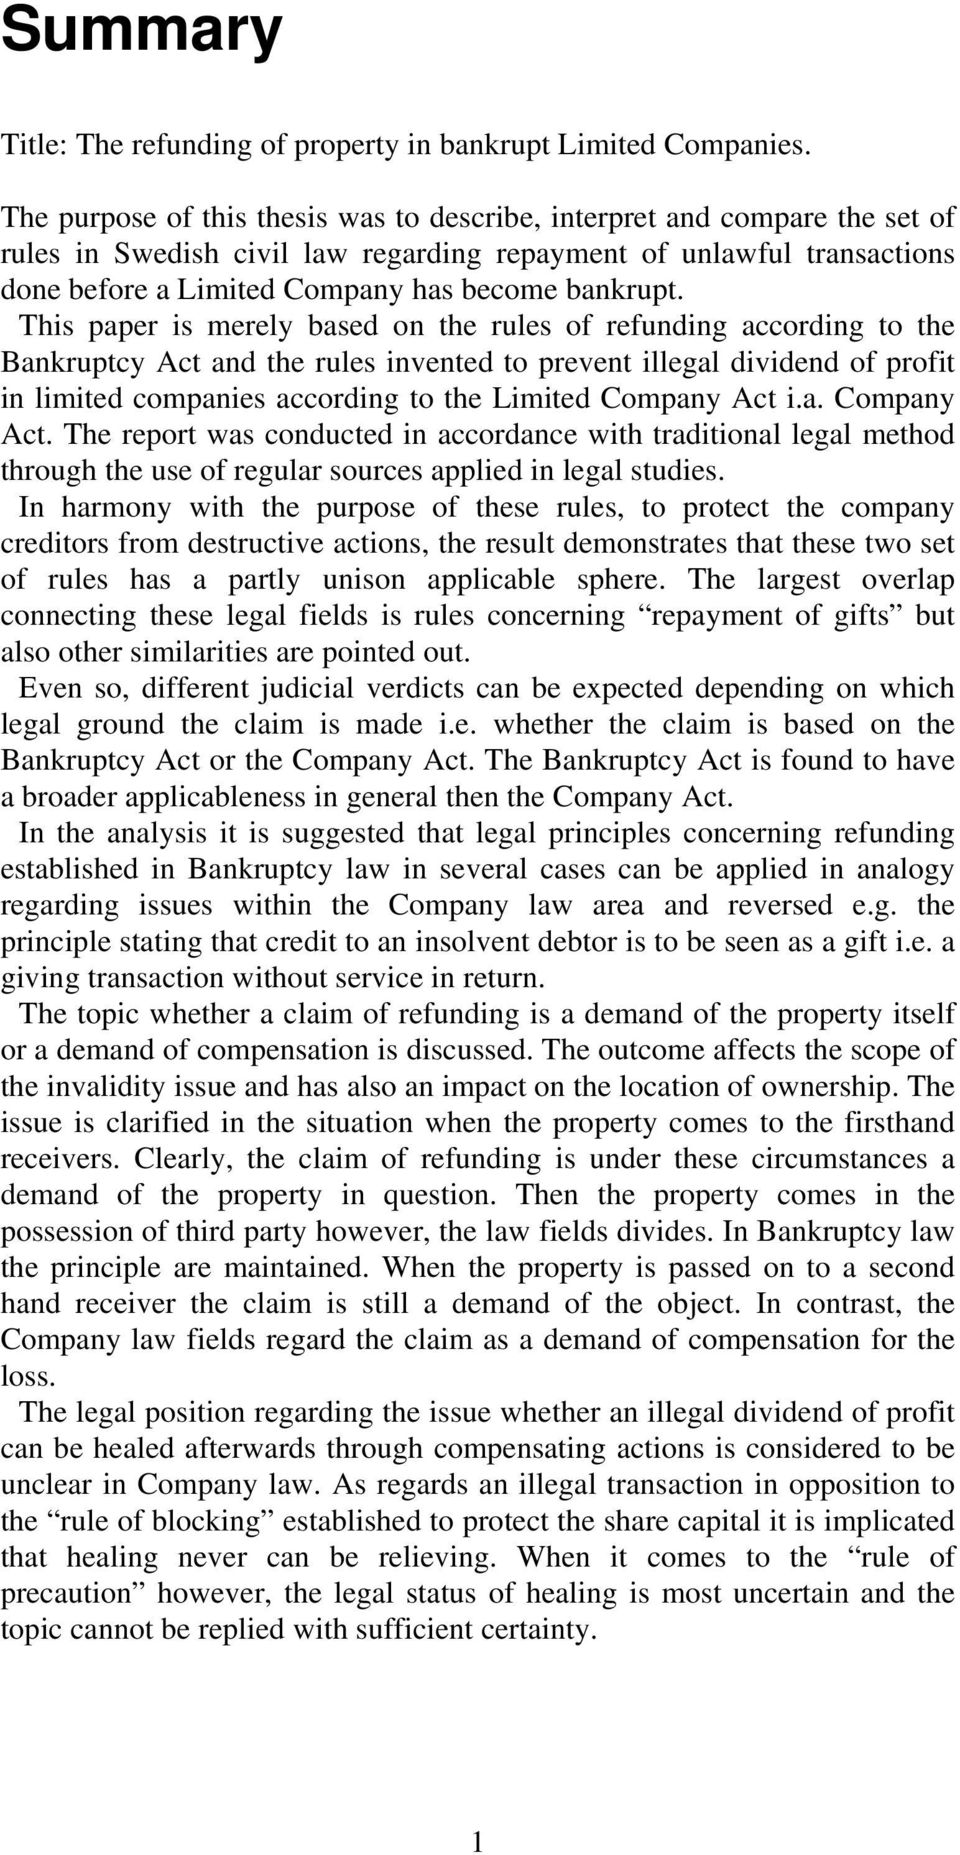 This paper is merely based on the rules of refunding according to the Bankruptcy Act and the rules invented to prevent illegal dividend of profit in limited companies according to the Limited Company